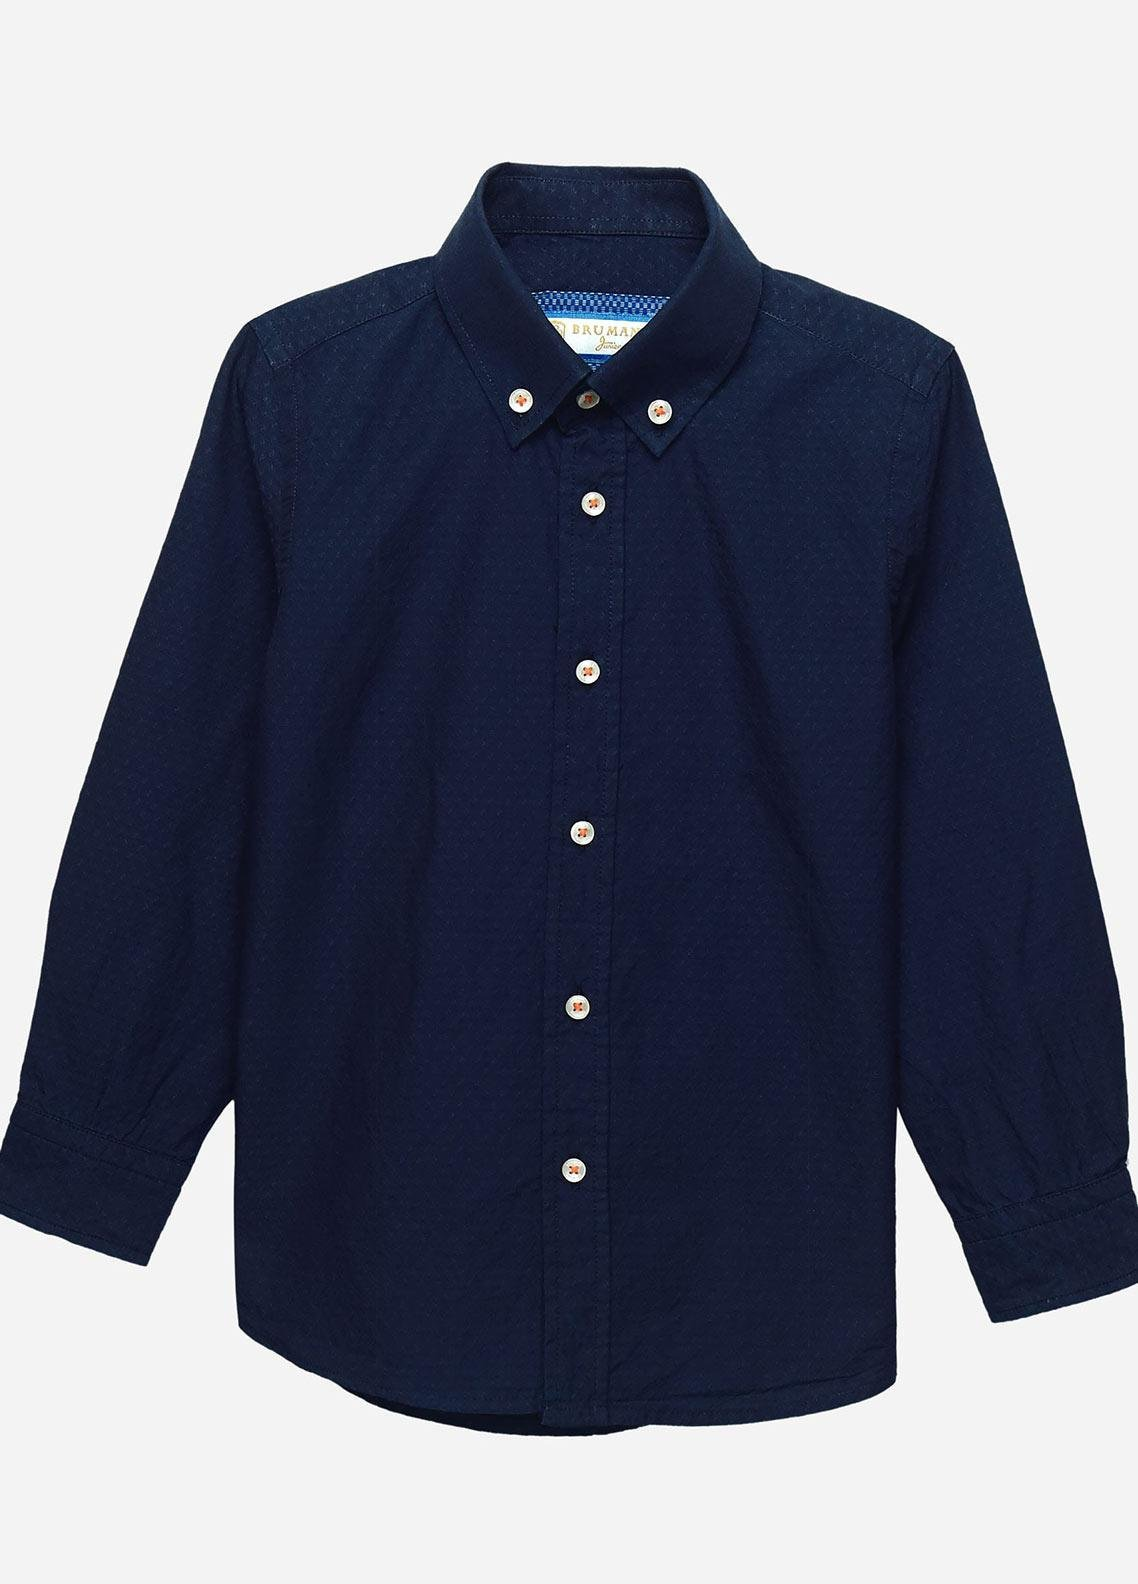 Brumano Cotton Casual Shirts for Boys -  BM20JS Navy Indigo Dyed Structured Casual Shirt-Junior